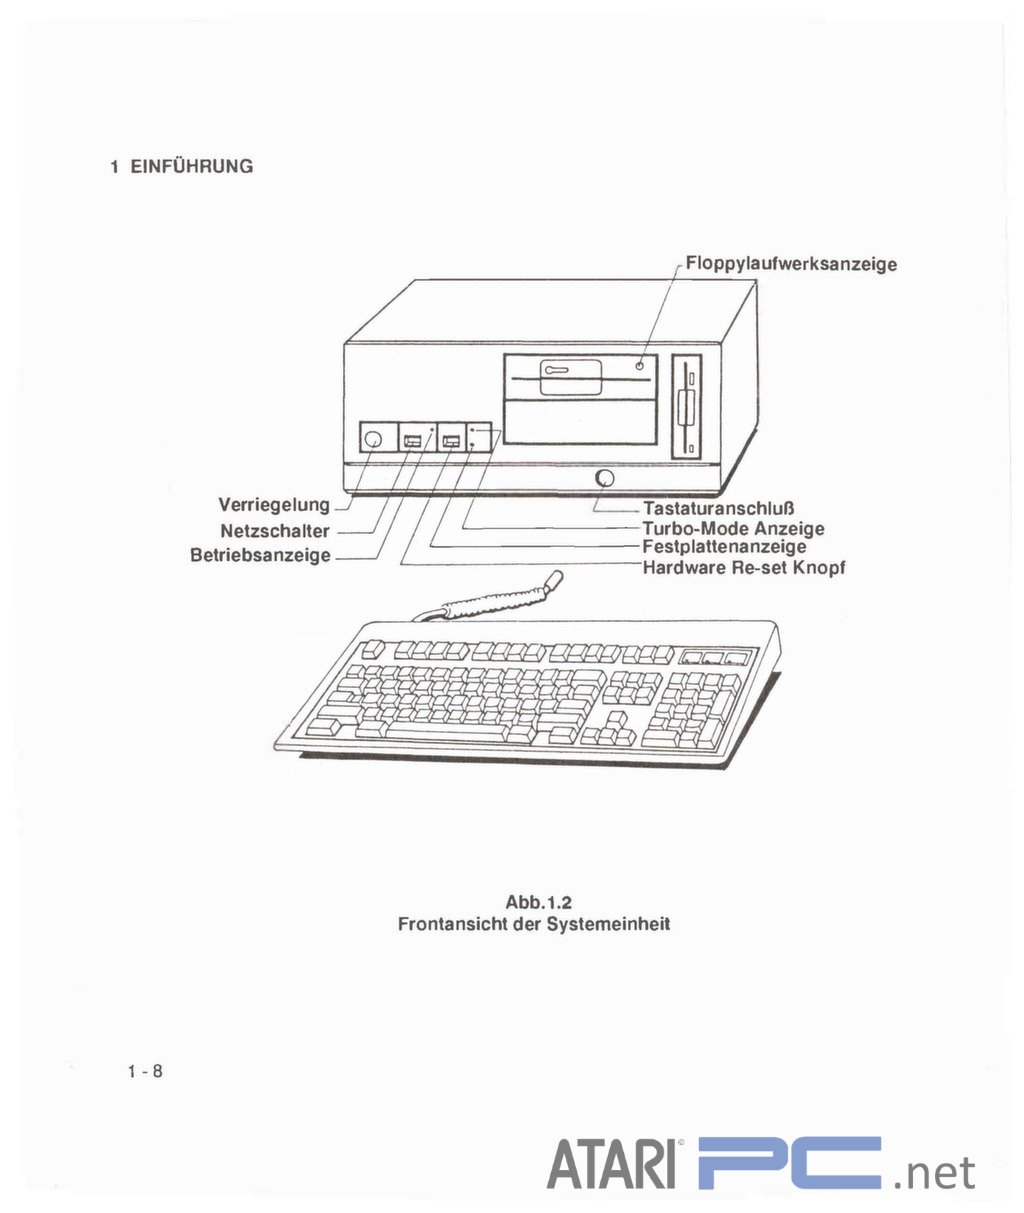 Atari Pc4 Mitac User Manual German Atari Pc